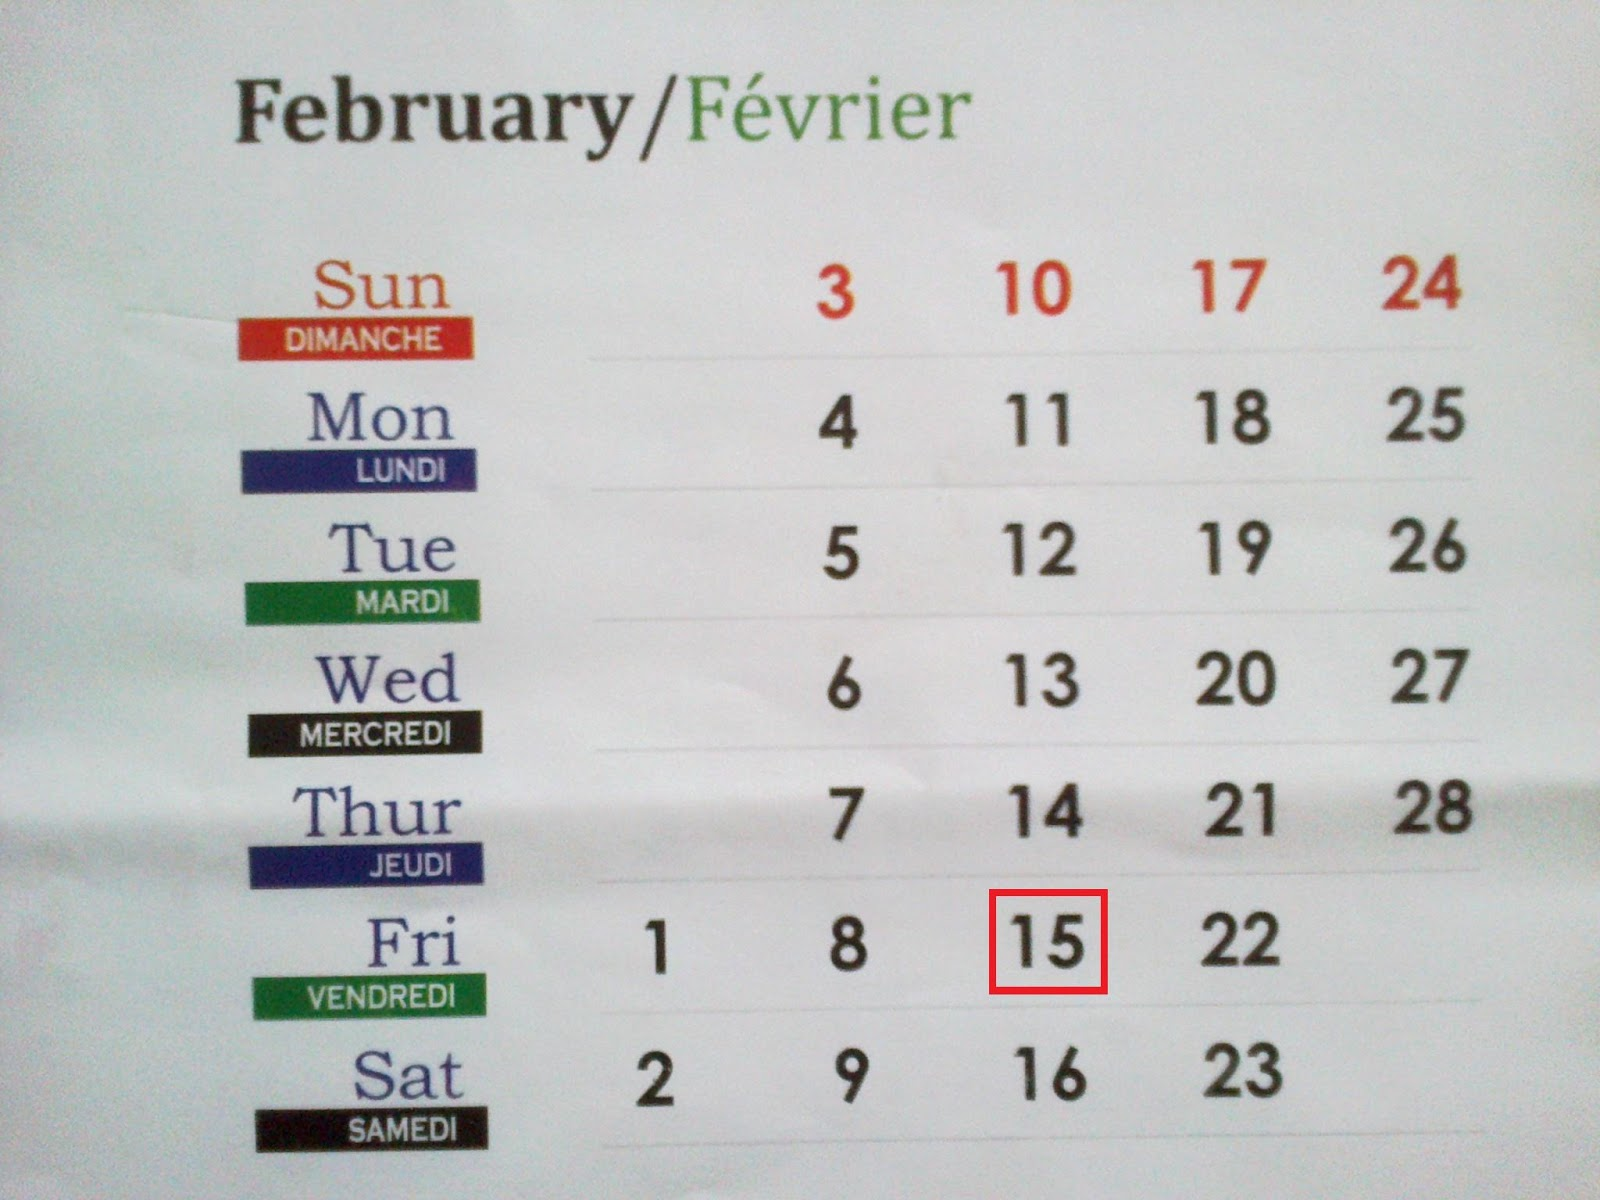 My Diary: Friday 15-02-2013